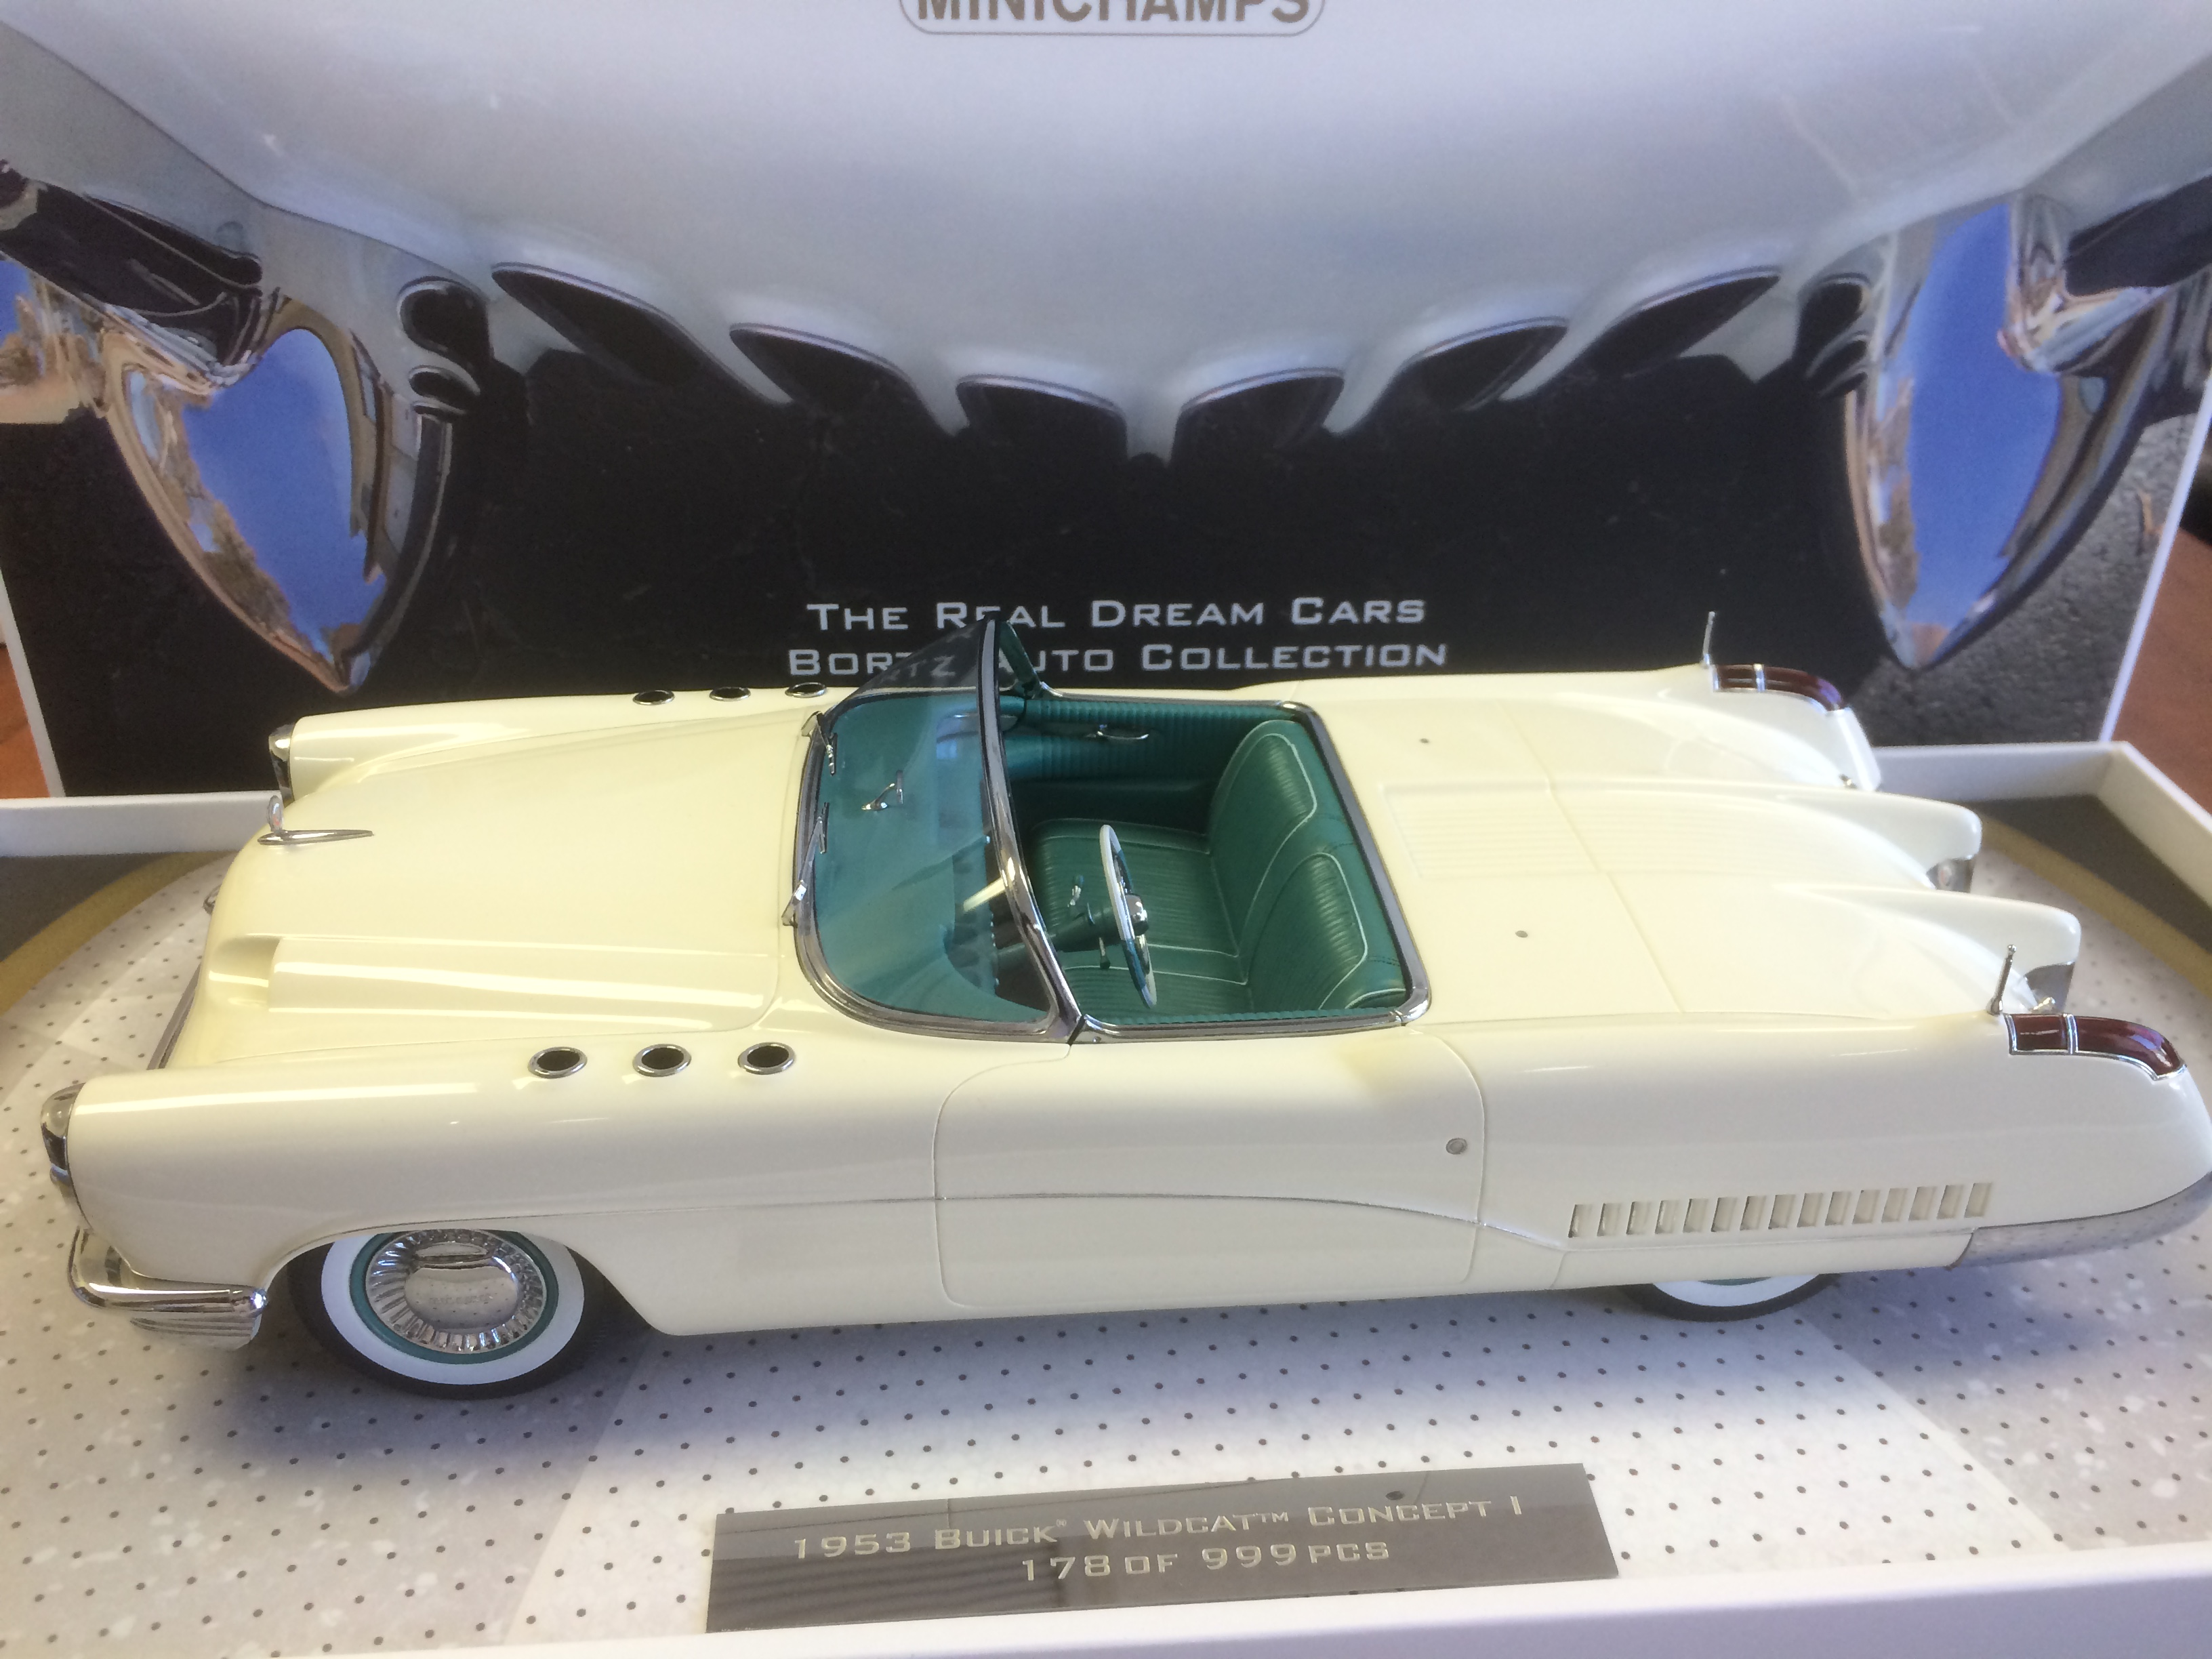 1953 Buick Wildcat I Concept – Next Release from Minichamps Bortz Collection